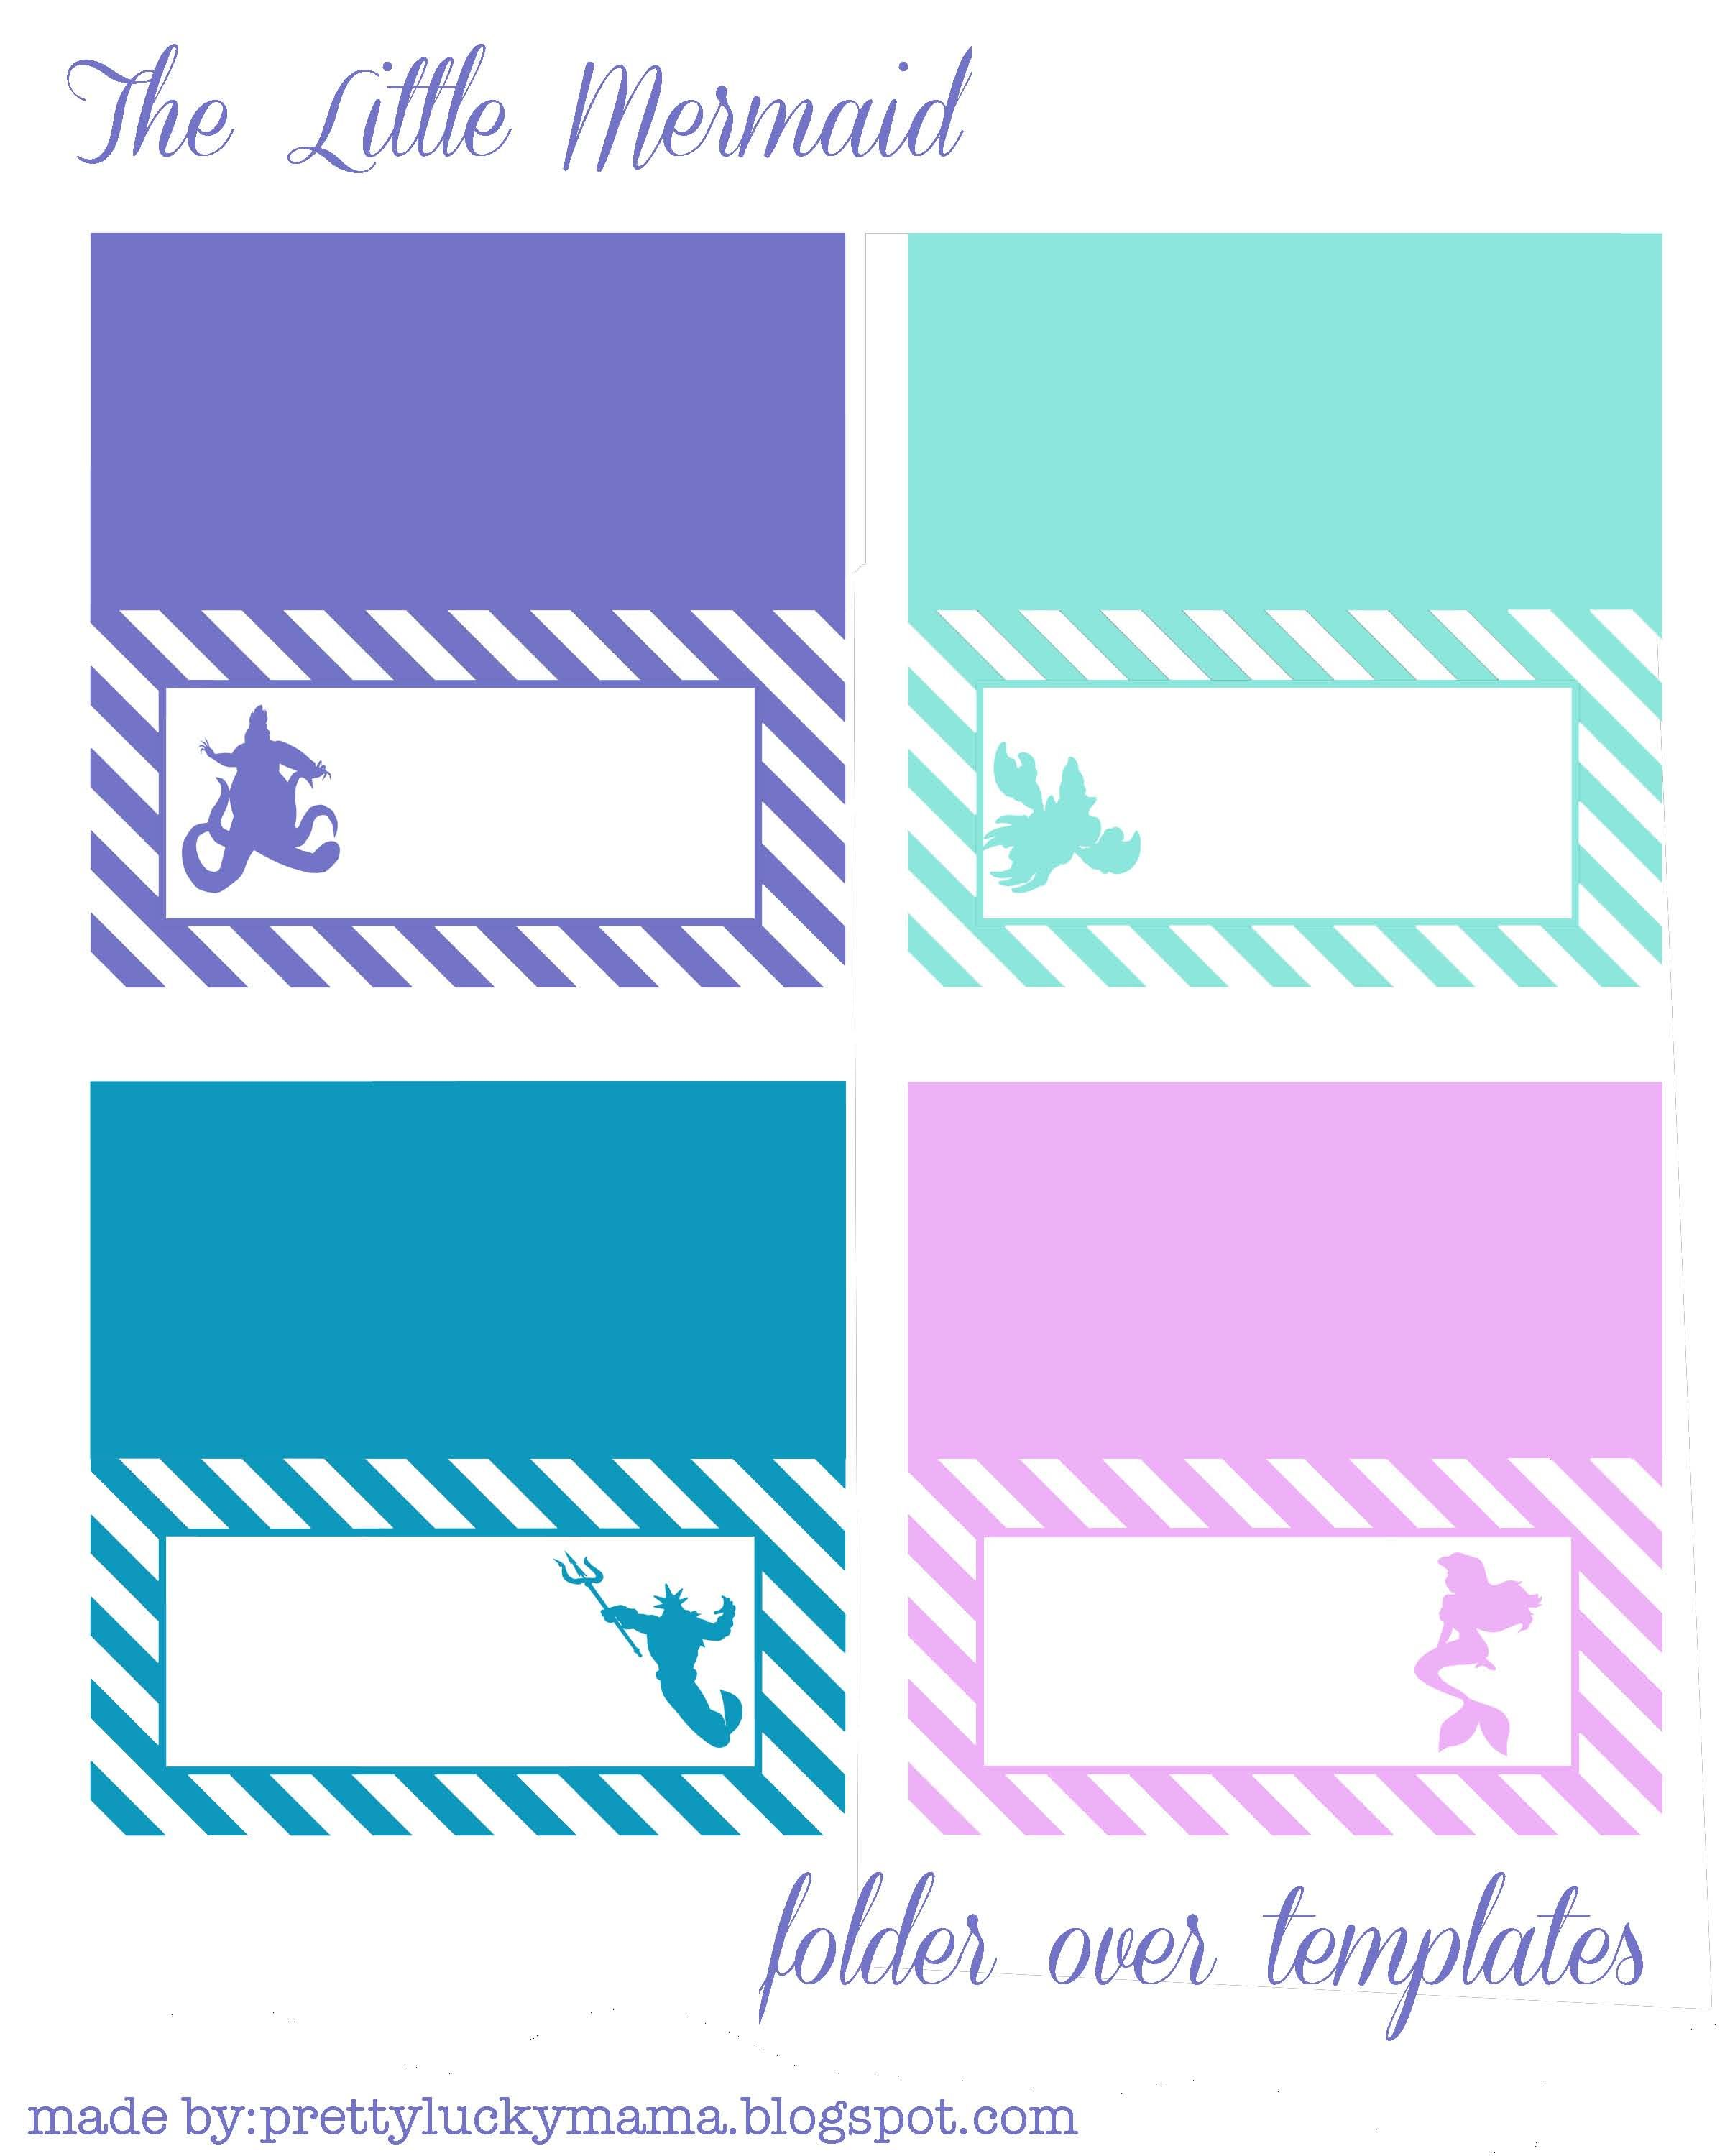 The Little Mermaid Fold Over Templates Free Printables Also Take A Look At My Shop For More